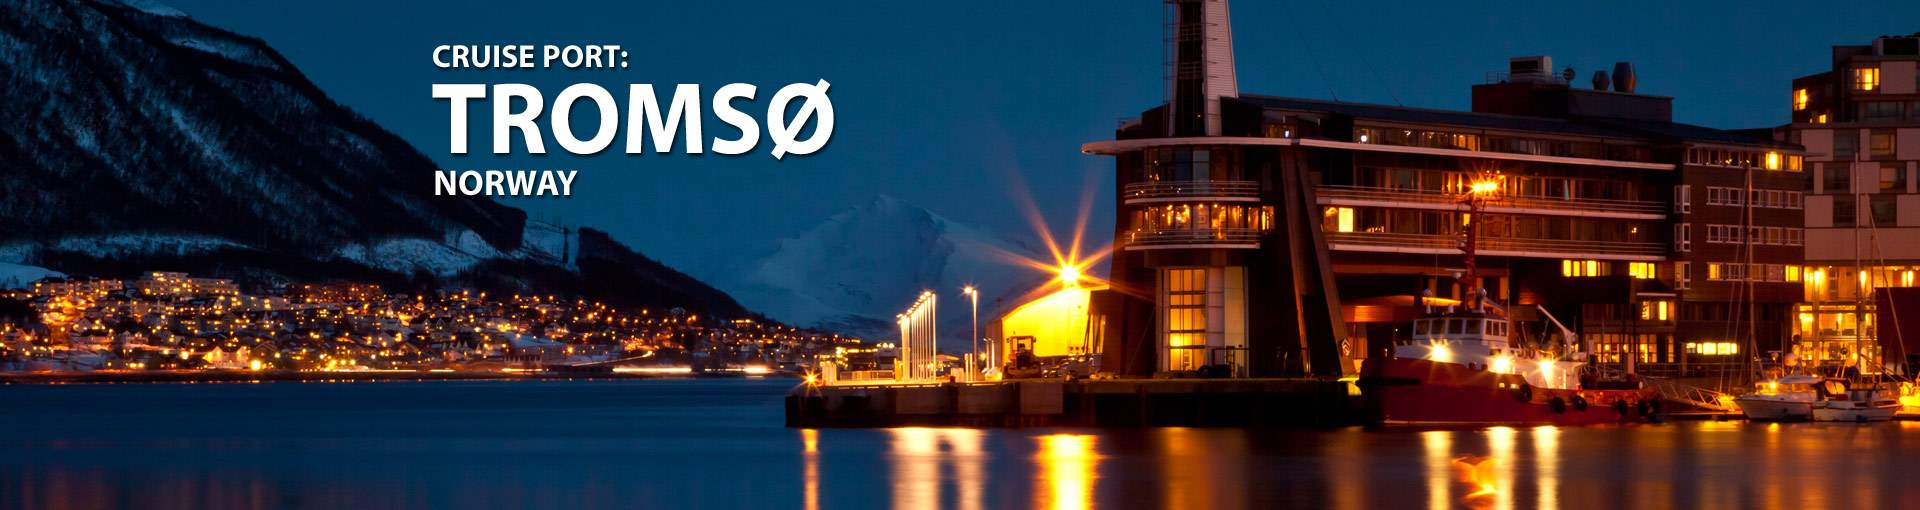 Cruises from Tromso, Norway